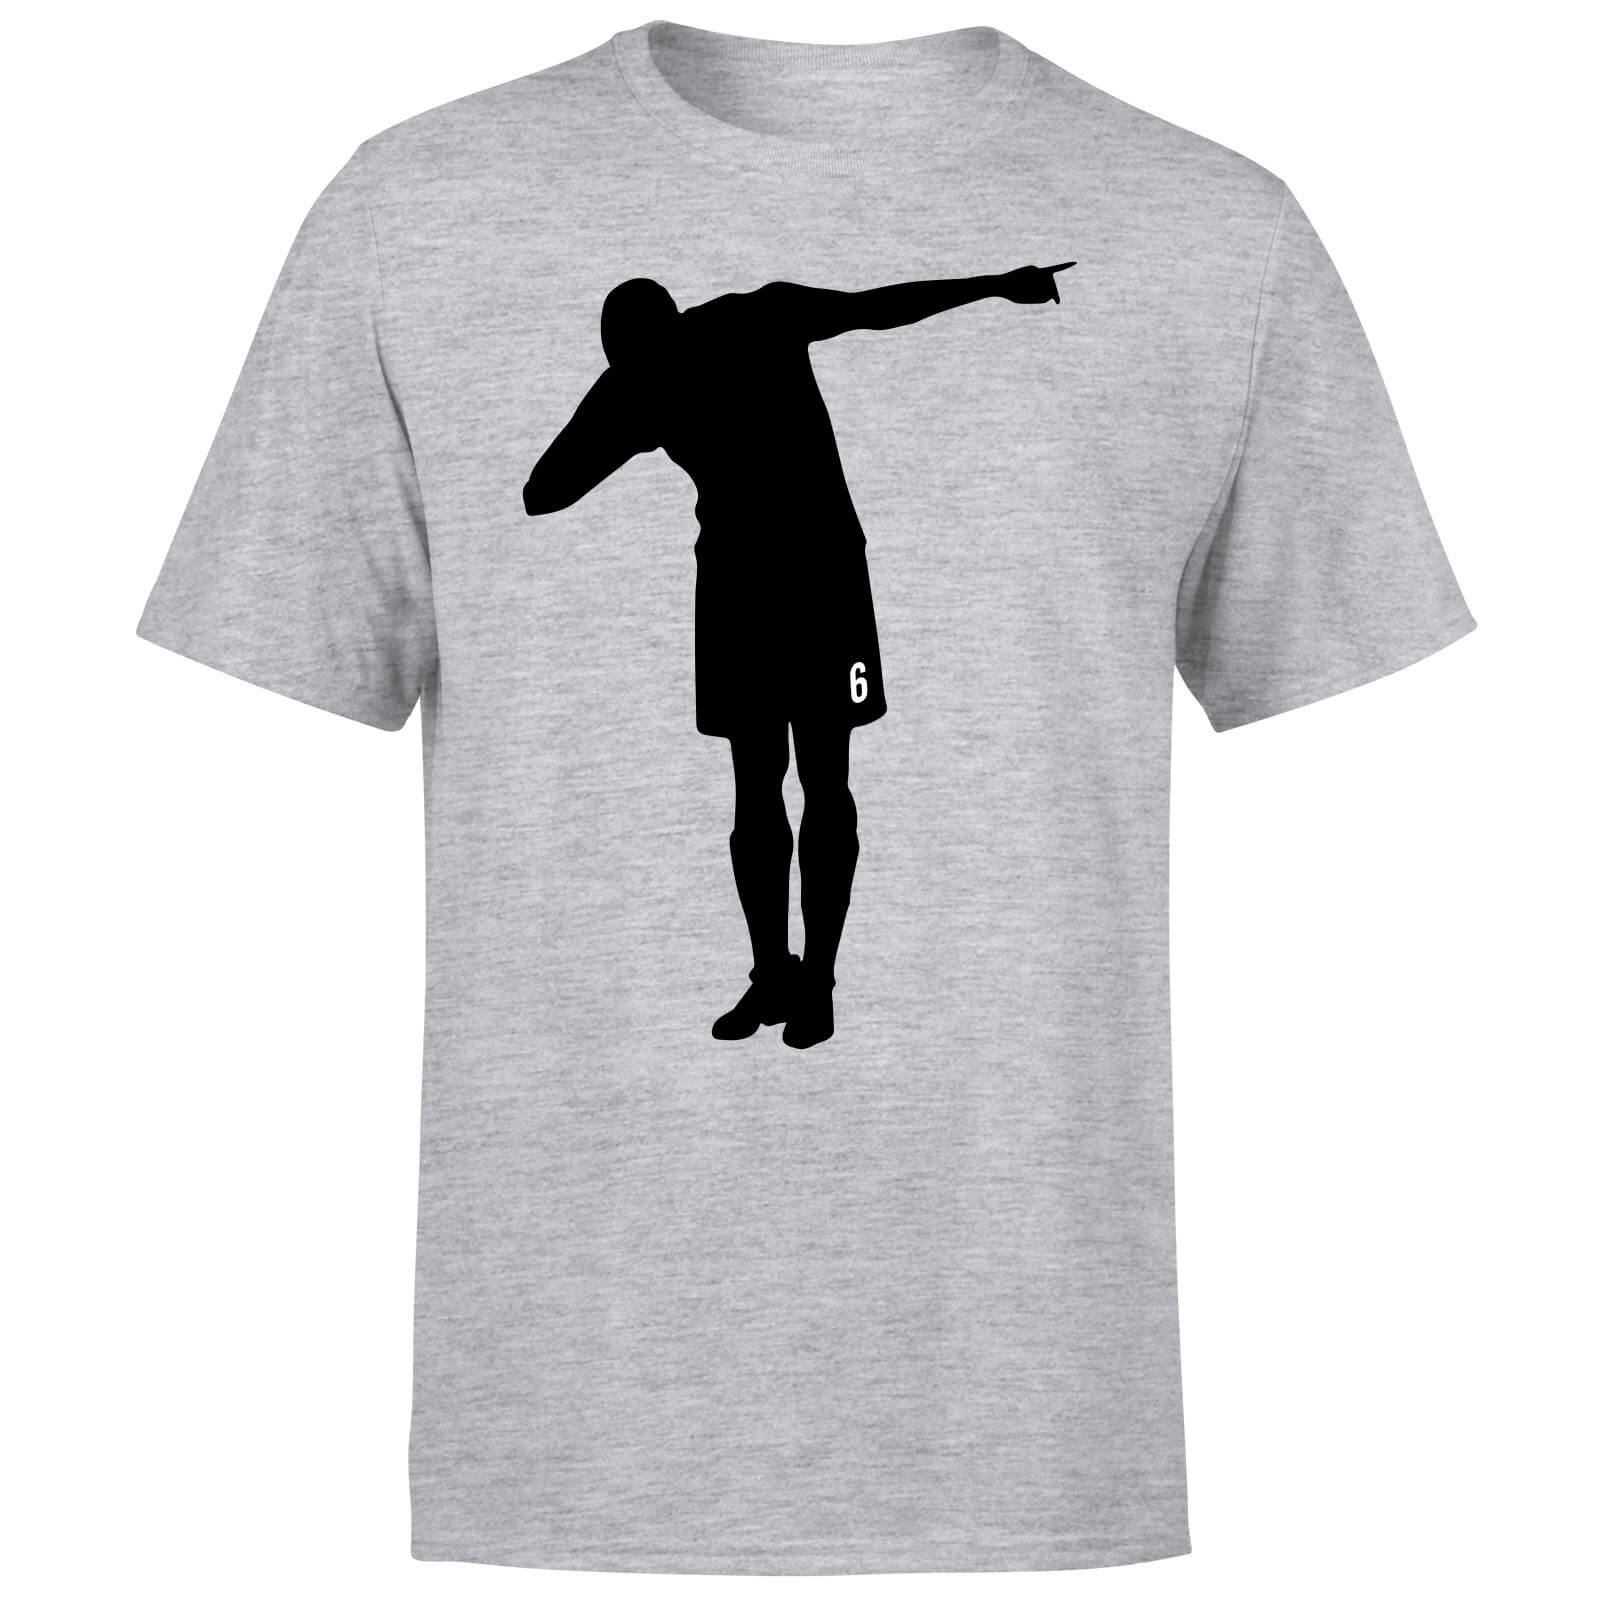 Celebration Dab T-Shirt - Grey